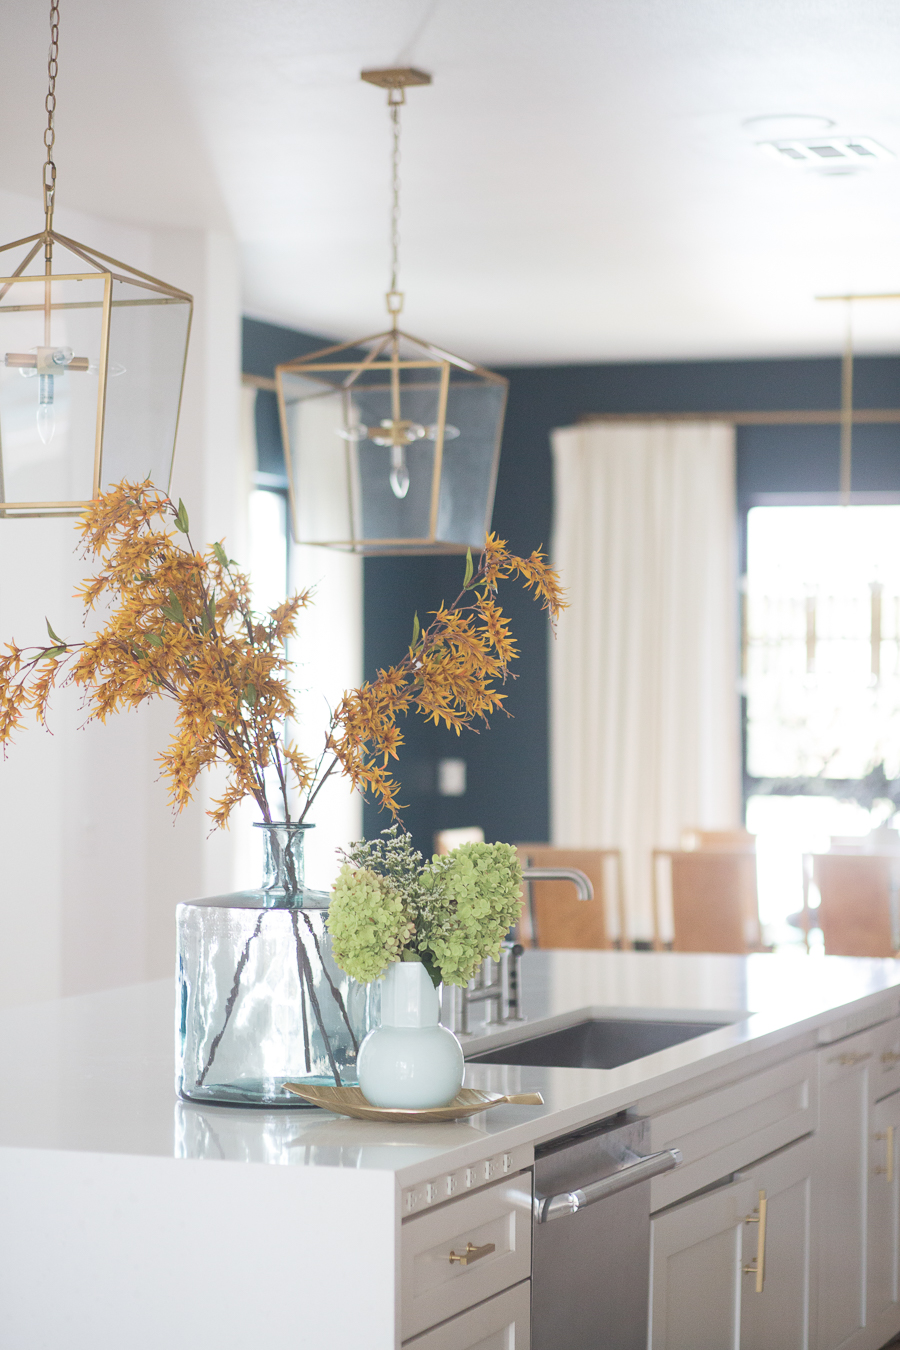 Loveliest Looks of Fall Home Tour Beautiful Fall Home Decor and Fall Fashion Ideas large white quartzite waterfall kitchen island with six gold barstools and a large green vase with yellow faux fall stems sitting on top of the countertop and gold kitchen lanterns hanging above the countertop then white kitchen cabinets with ann sacks patterned backsplash and gold hardware on the cabinets looking into a dark green dining room with a sputnik chandelier and burl wood dining room chairs